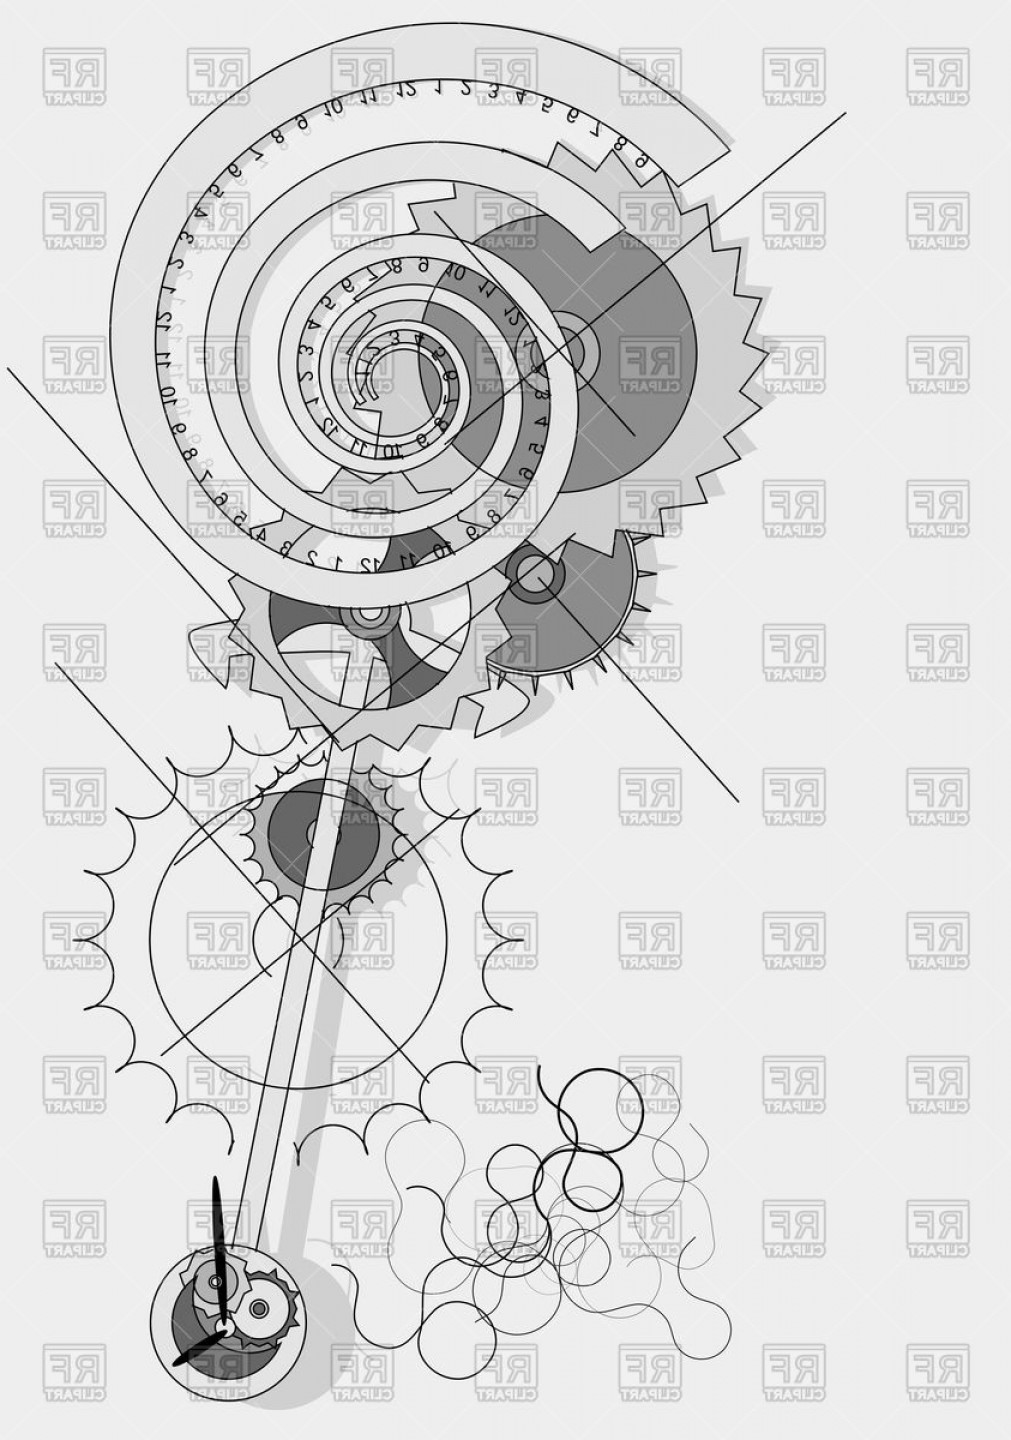 Watch Gears Vector: Pendulum Concept Abstract Clock Mechanism With Gears Vector Clipart